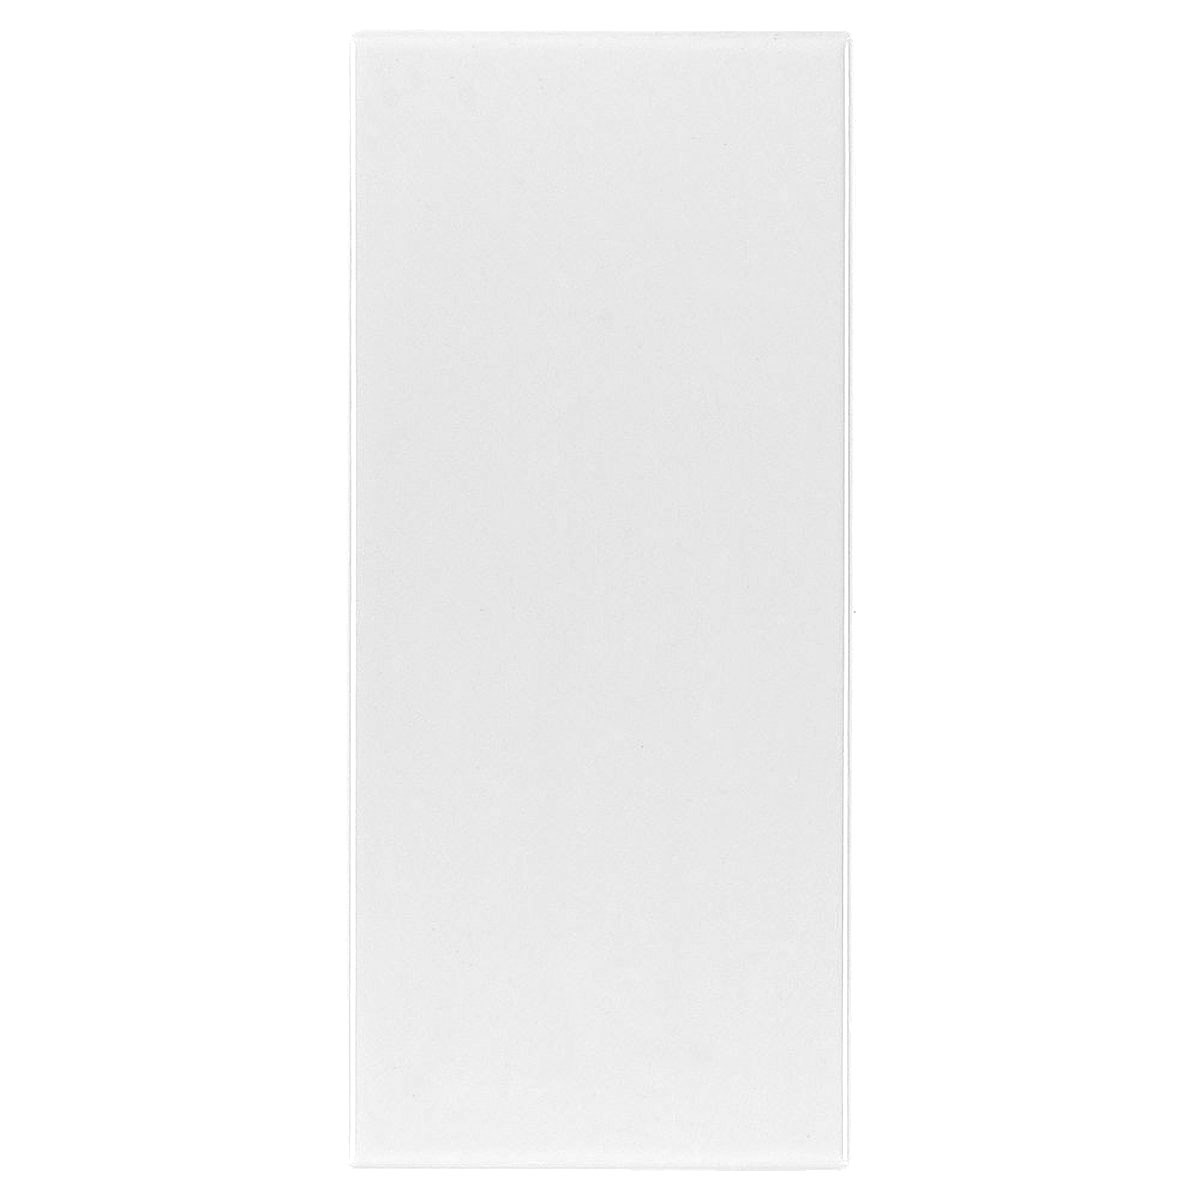 Sea Gull Lighting Address Light Address Light Number Tile 9 in White Plastic 90619-68